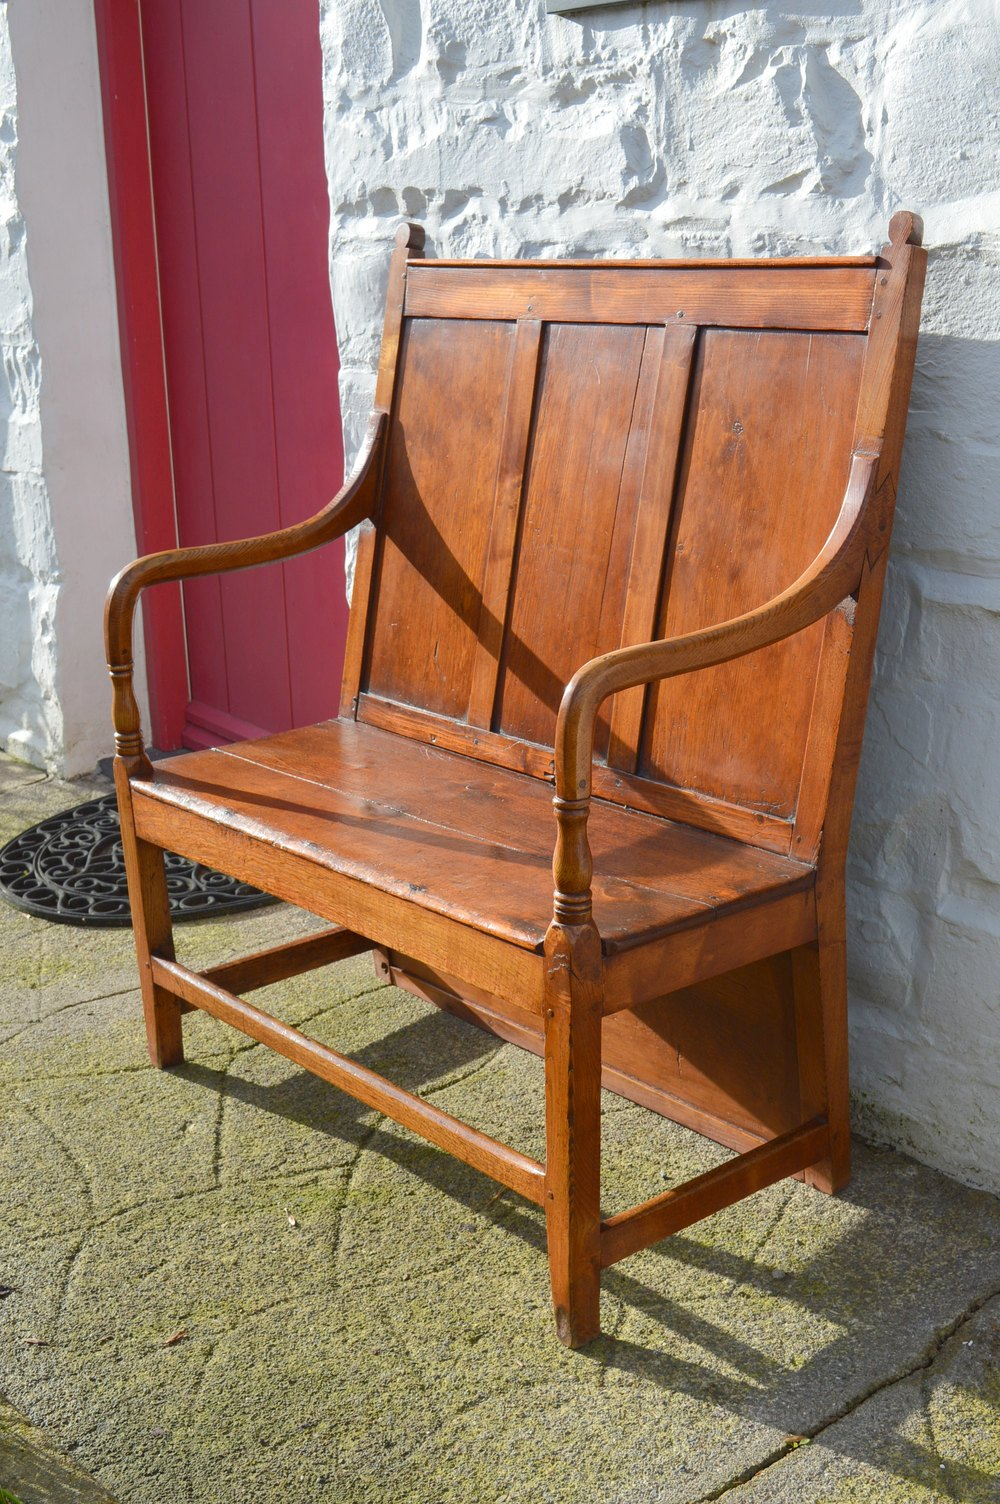 Magnificent Rare Welsh Settle Of Small Proportions Antiques Atlas Beatyapartments Chair Design Images Beatyapartmentscom